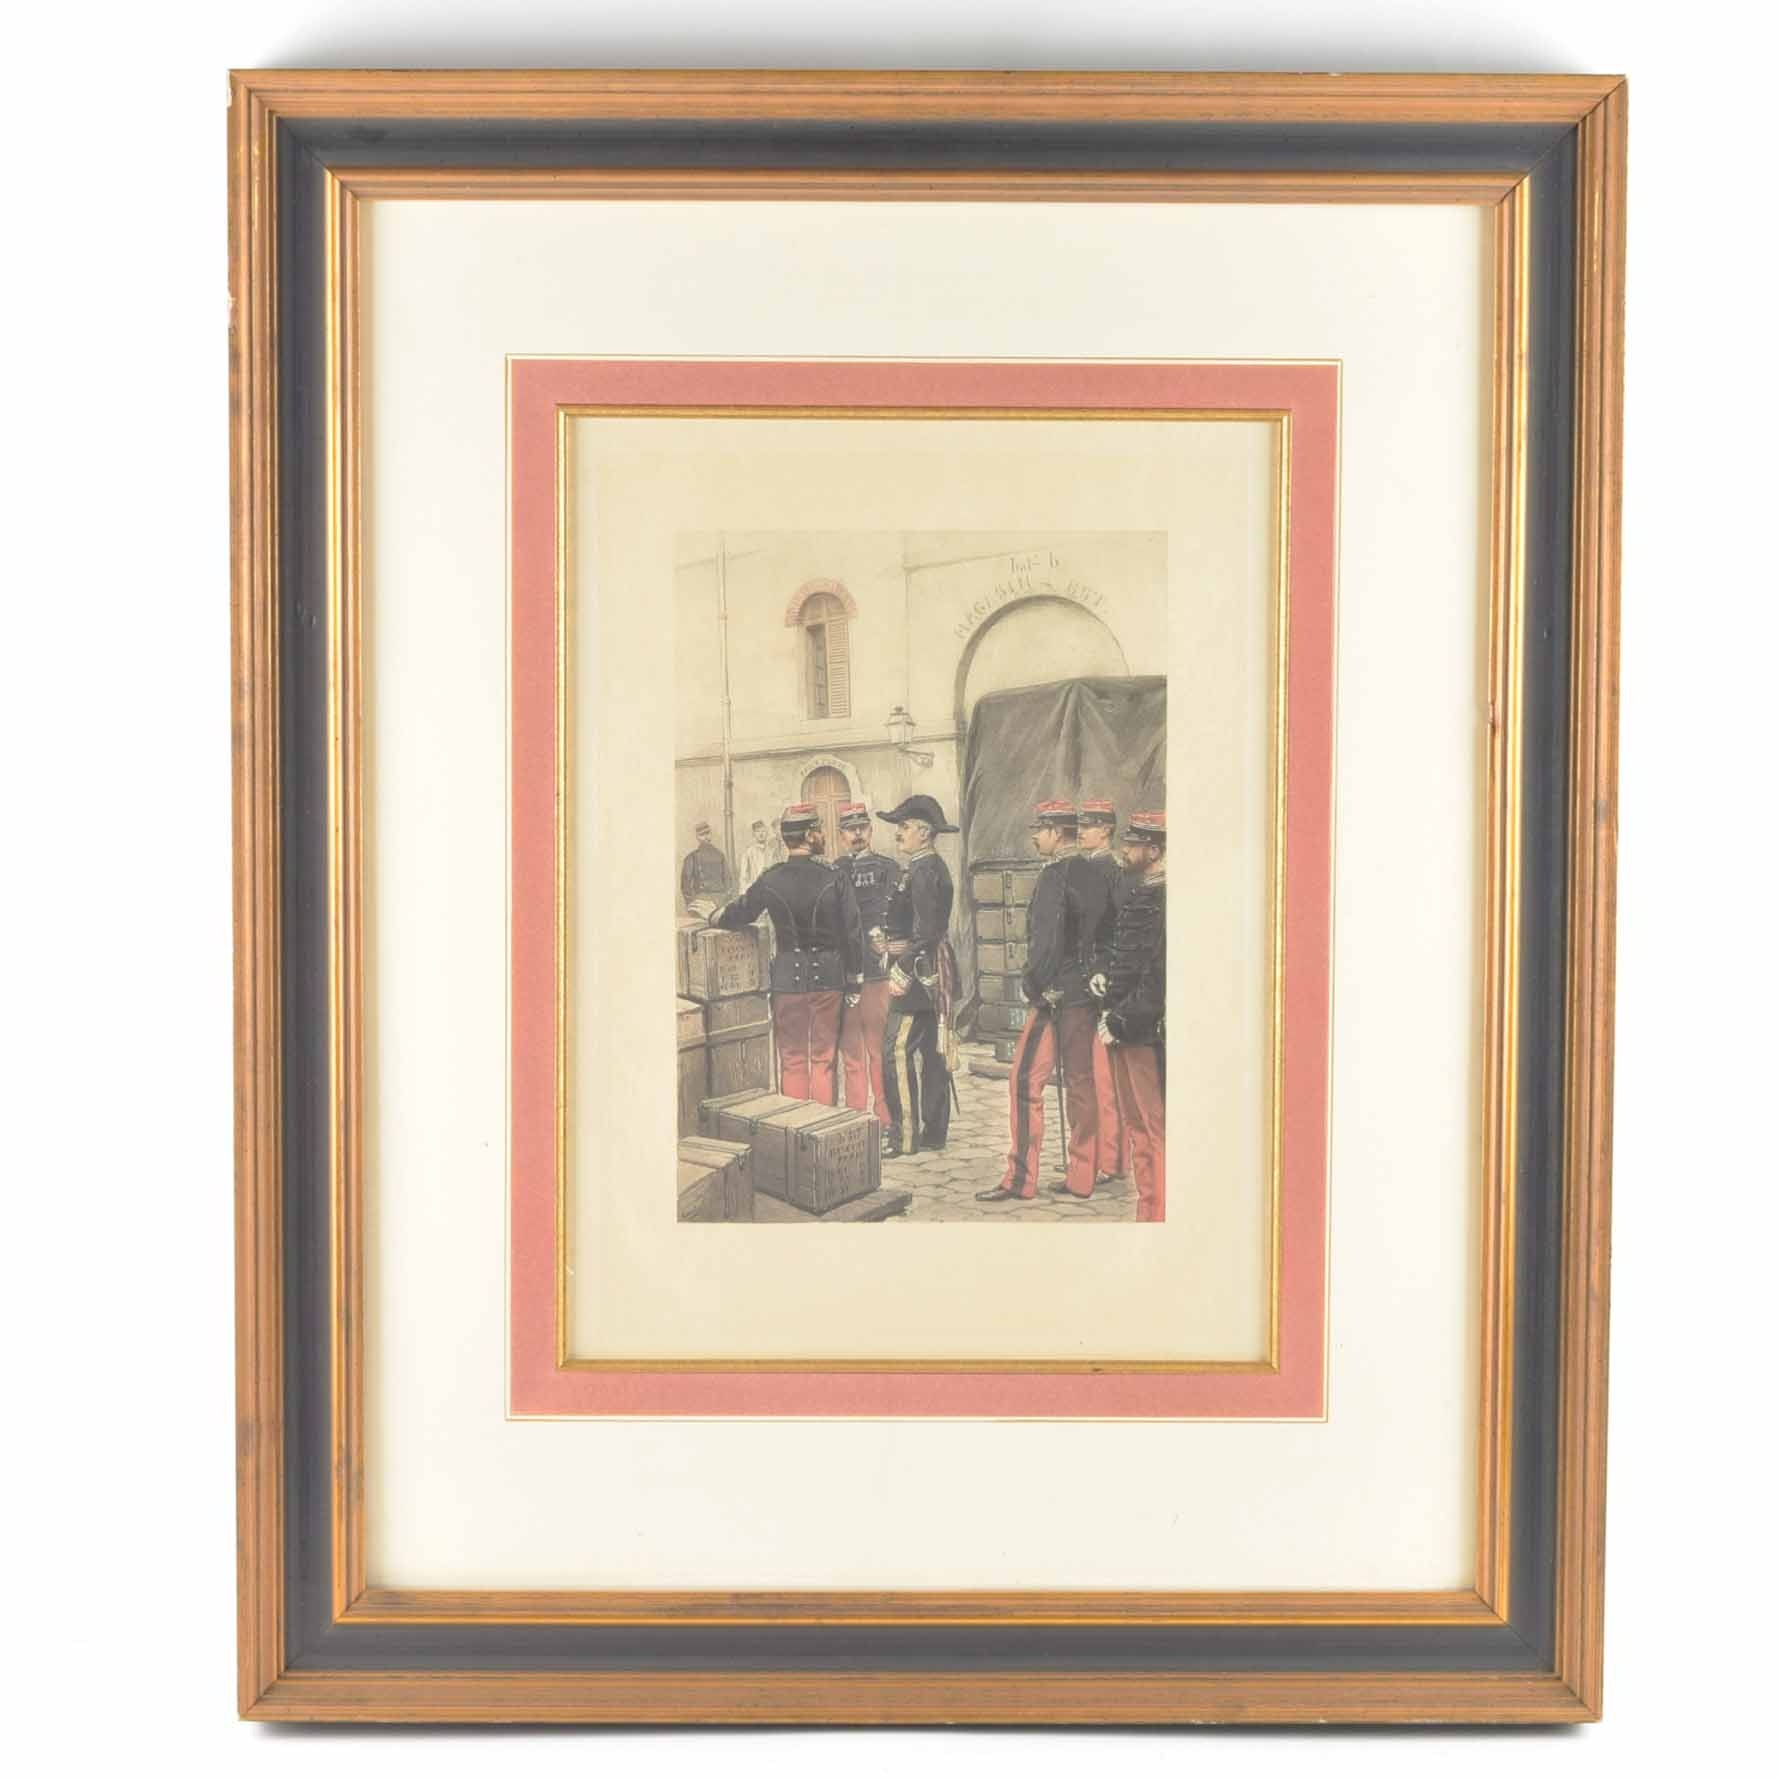 Framed Antique French Hand-Colored Print with Aquatint of French Soldiers